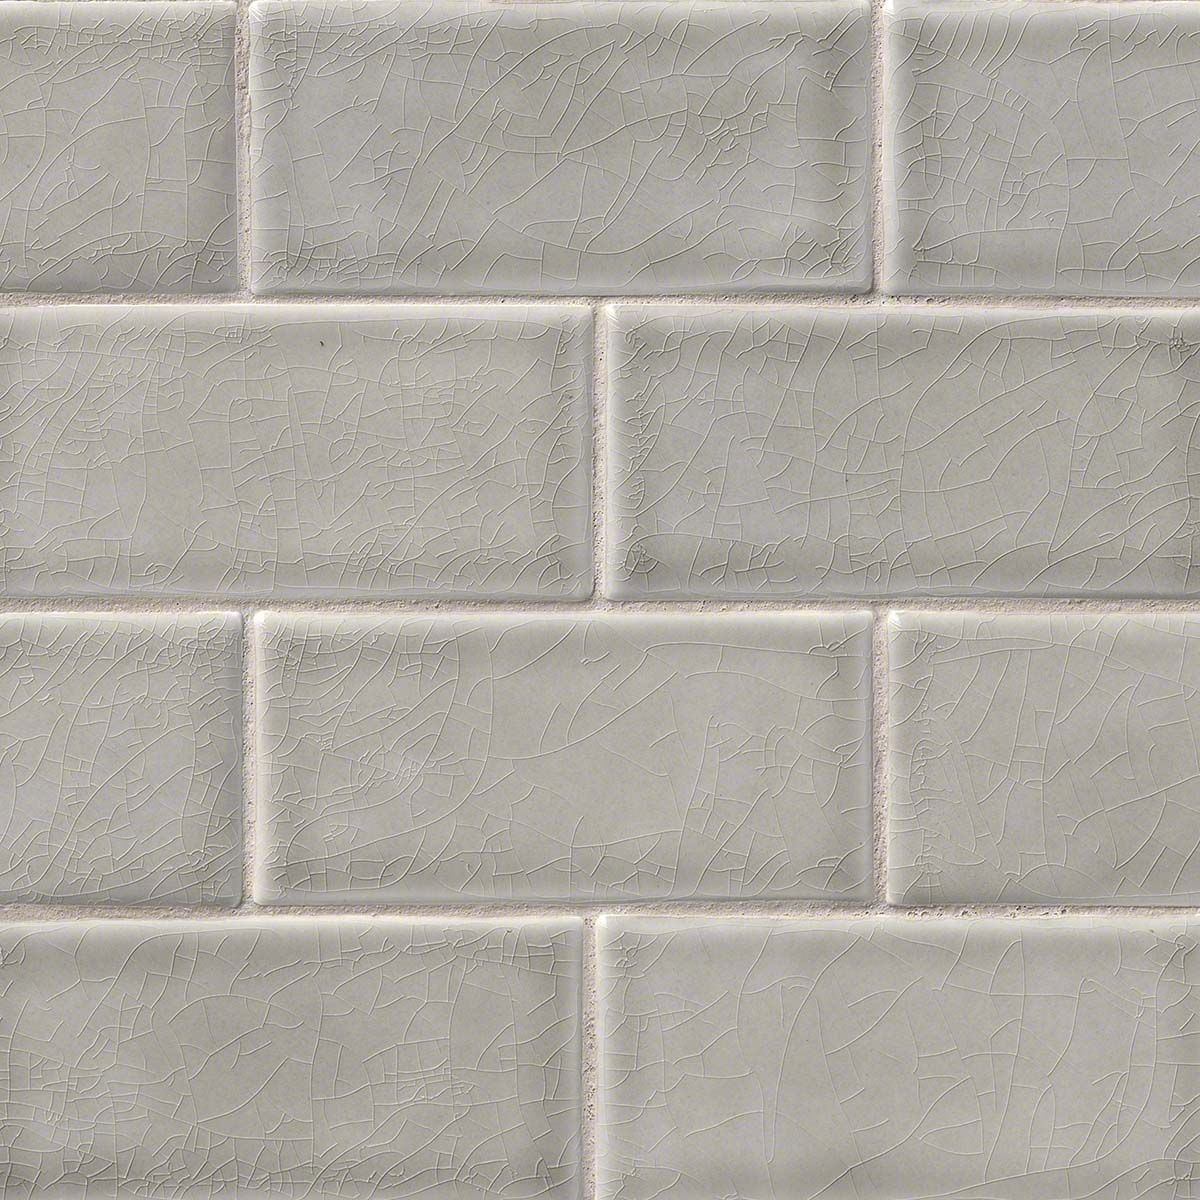 Subway tile dove gray subway tile 3x6 home projects pinterest subway tile dove gray subway tile 3x6 dailygadgetfo Choice Image